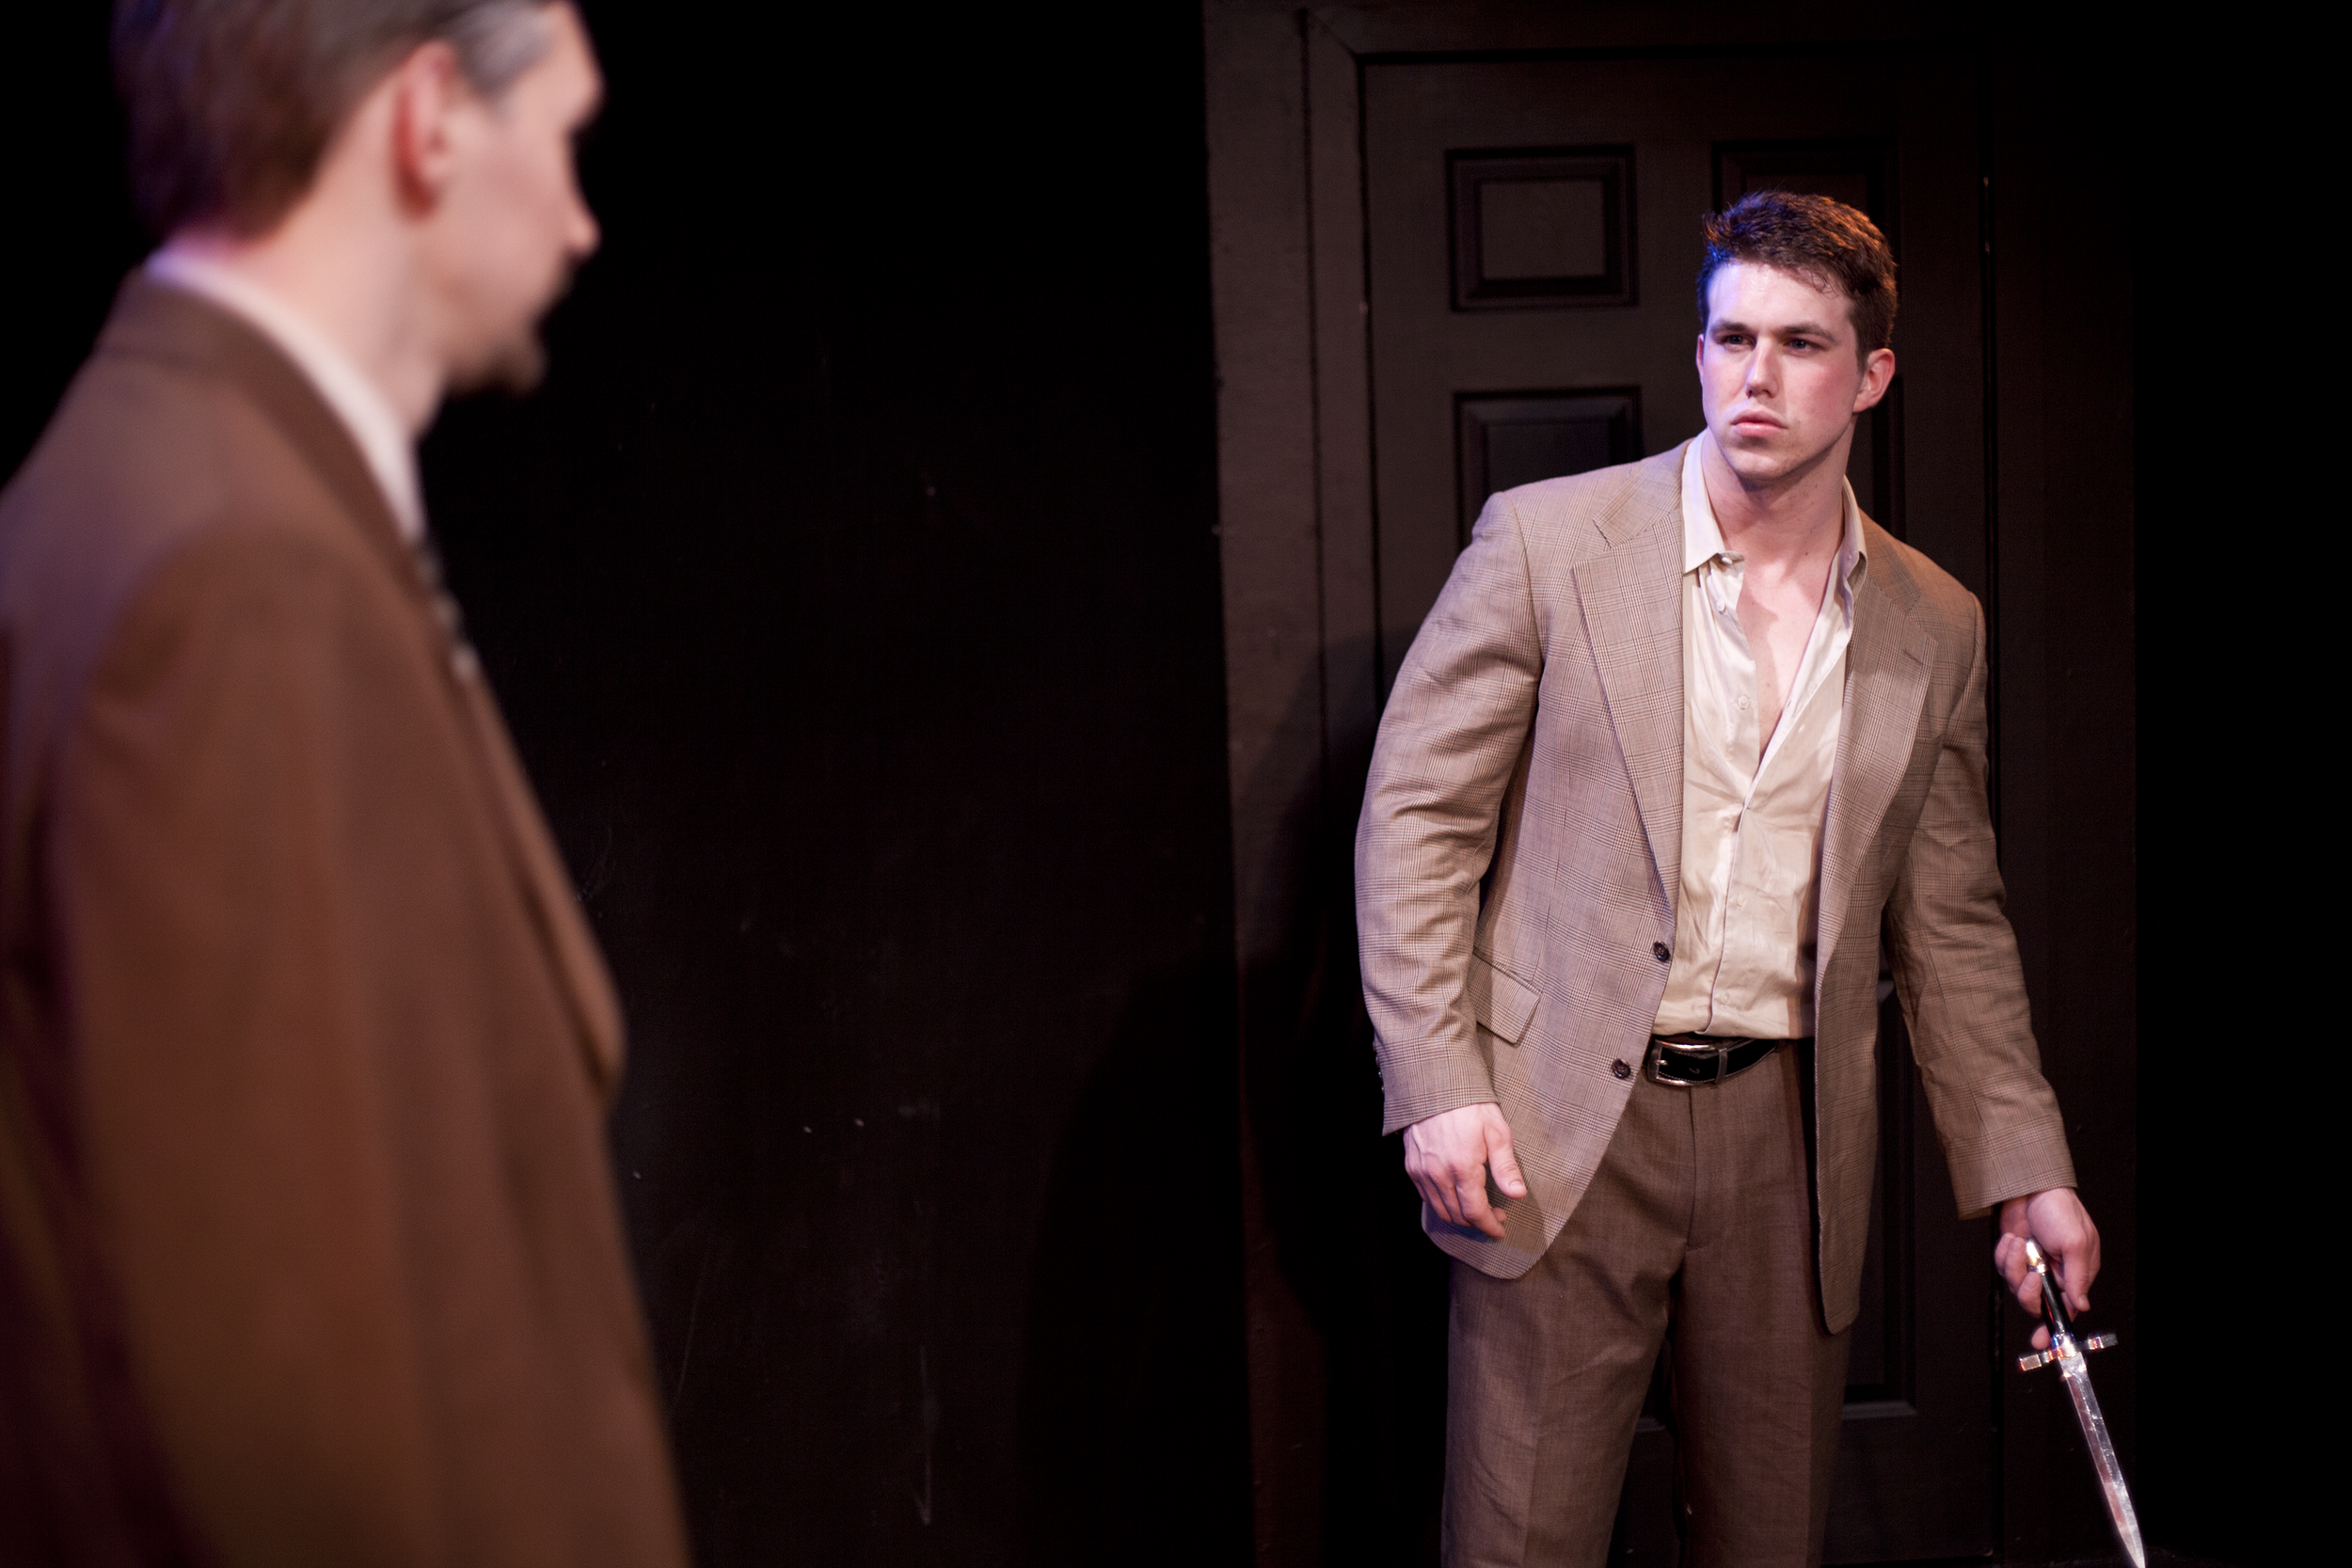 Production image of Claudius (David Bodenschatz) and Laertes(Mat Leonard) in May Violets Spring when produced with Dare Lab at The Bridge Theatre inSpring 2014. Photographs by Trish Phelps .